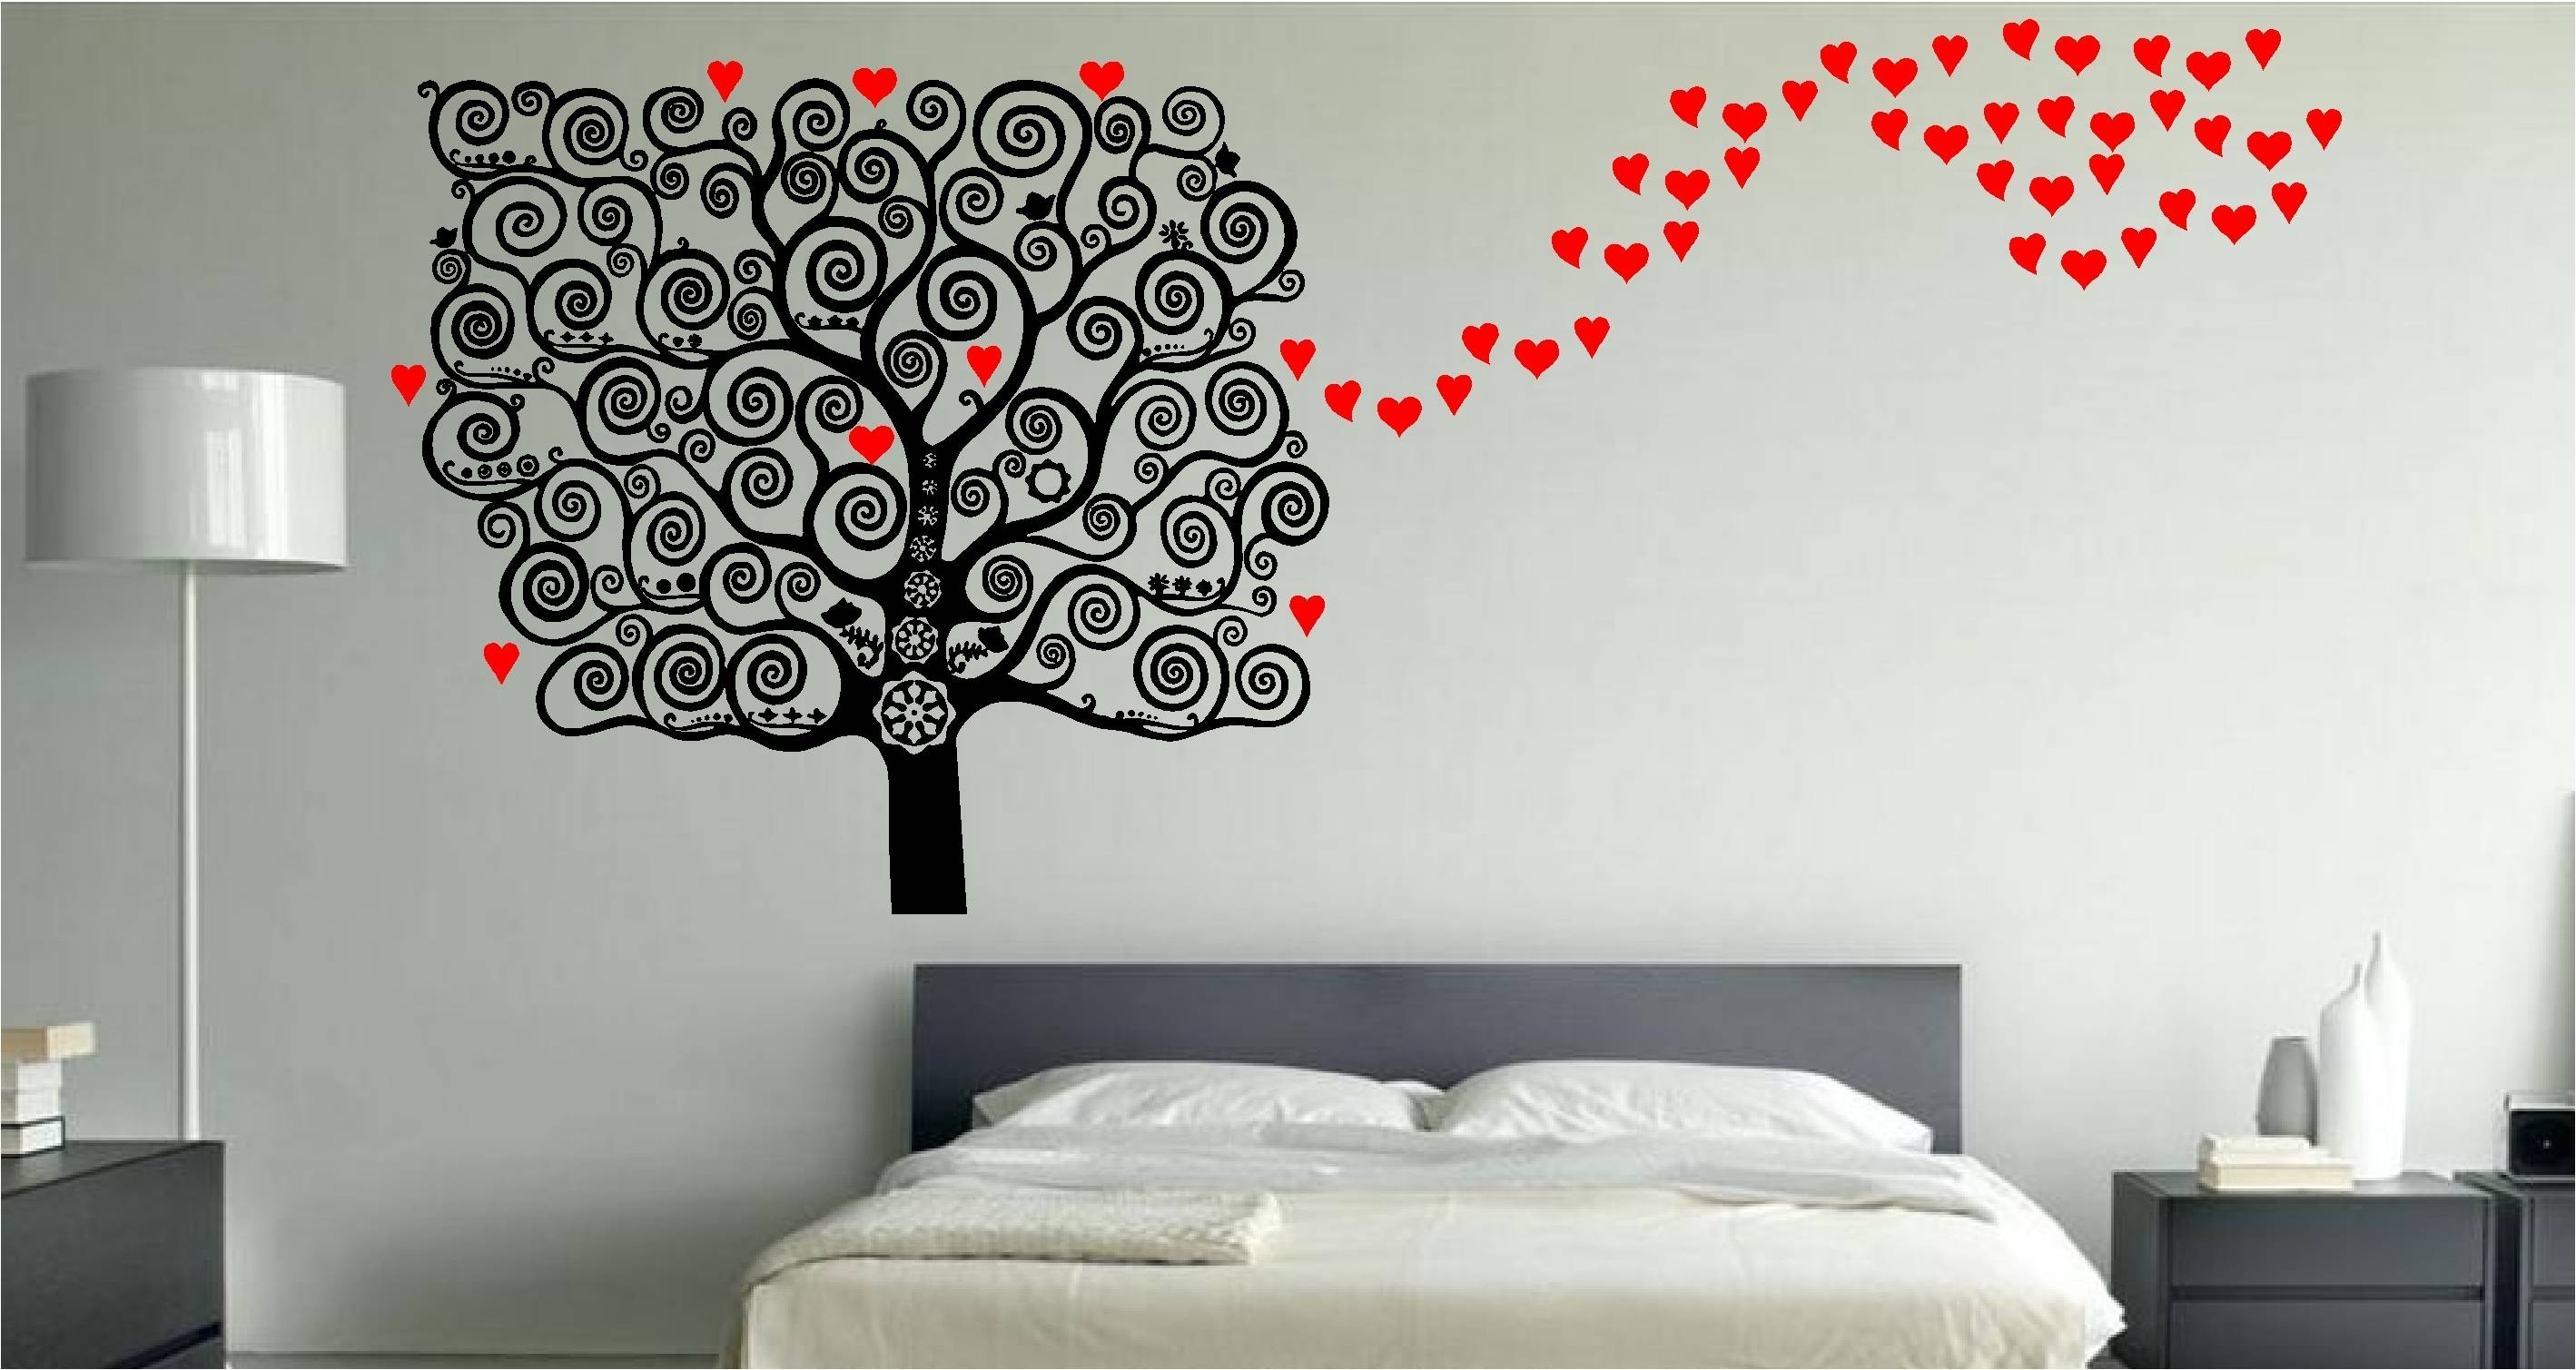 Bedroom Design : Amazing Unique Wall Art Large Wall Decor With Regard To Most Recent Oversized Wall Art (View 24 of 25)